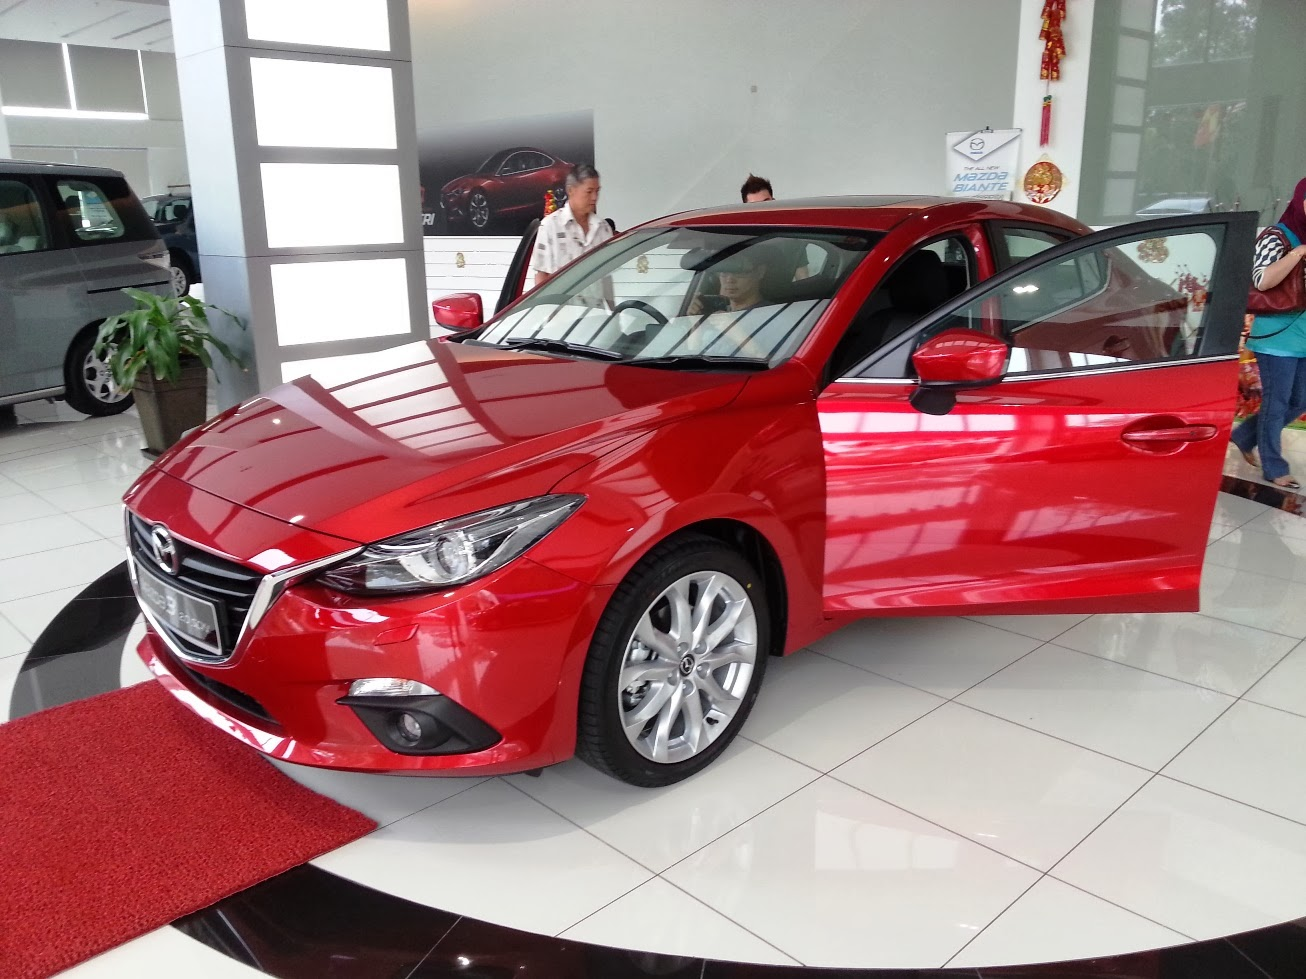 The new 2014 mazda 3 launched malaysia sports bodykit modified version